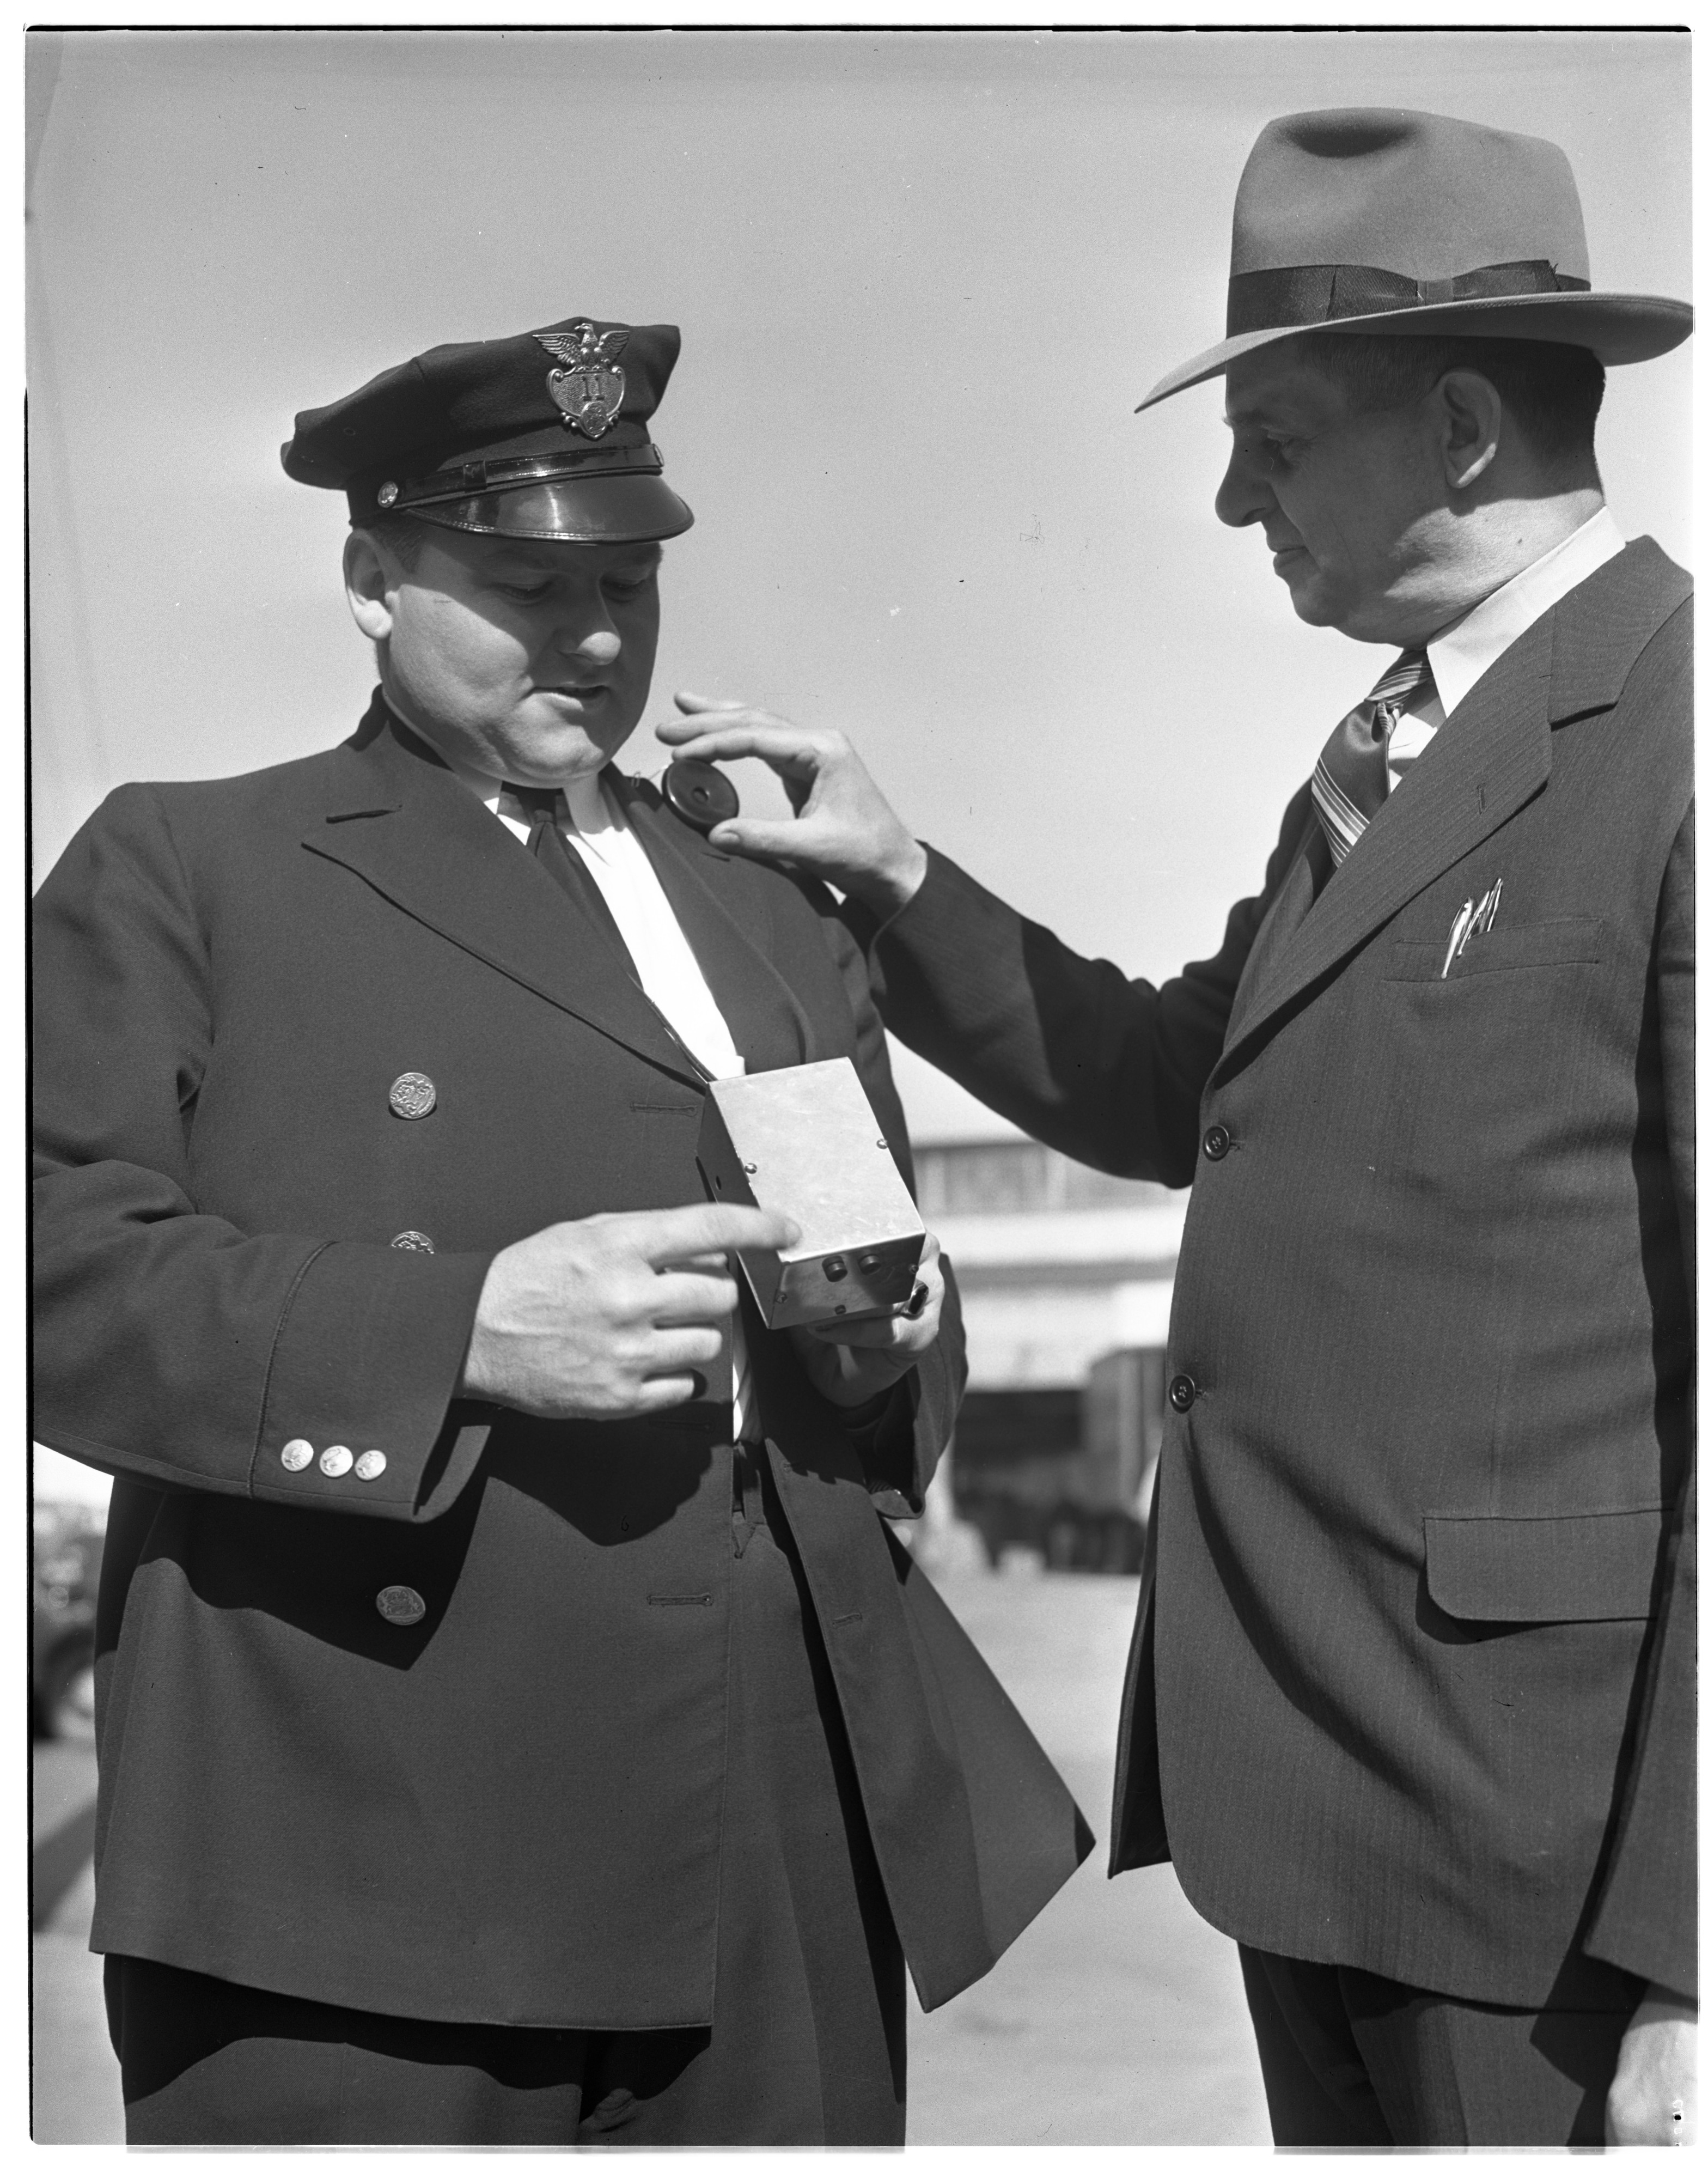 Ann Arbor Police Department Officer Rolland J. Gainsley and Chief of Police Norman Cook with Portable Radio image